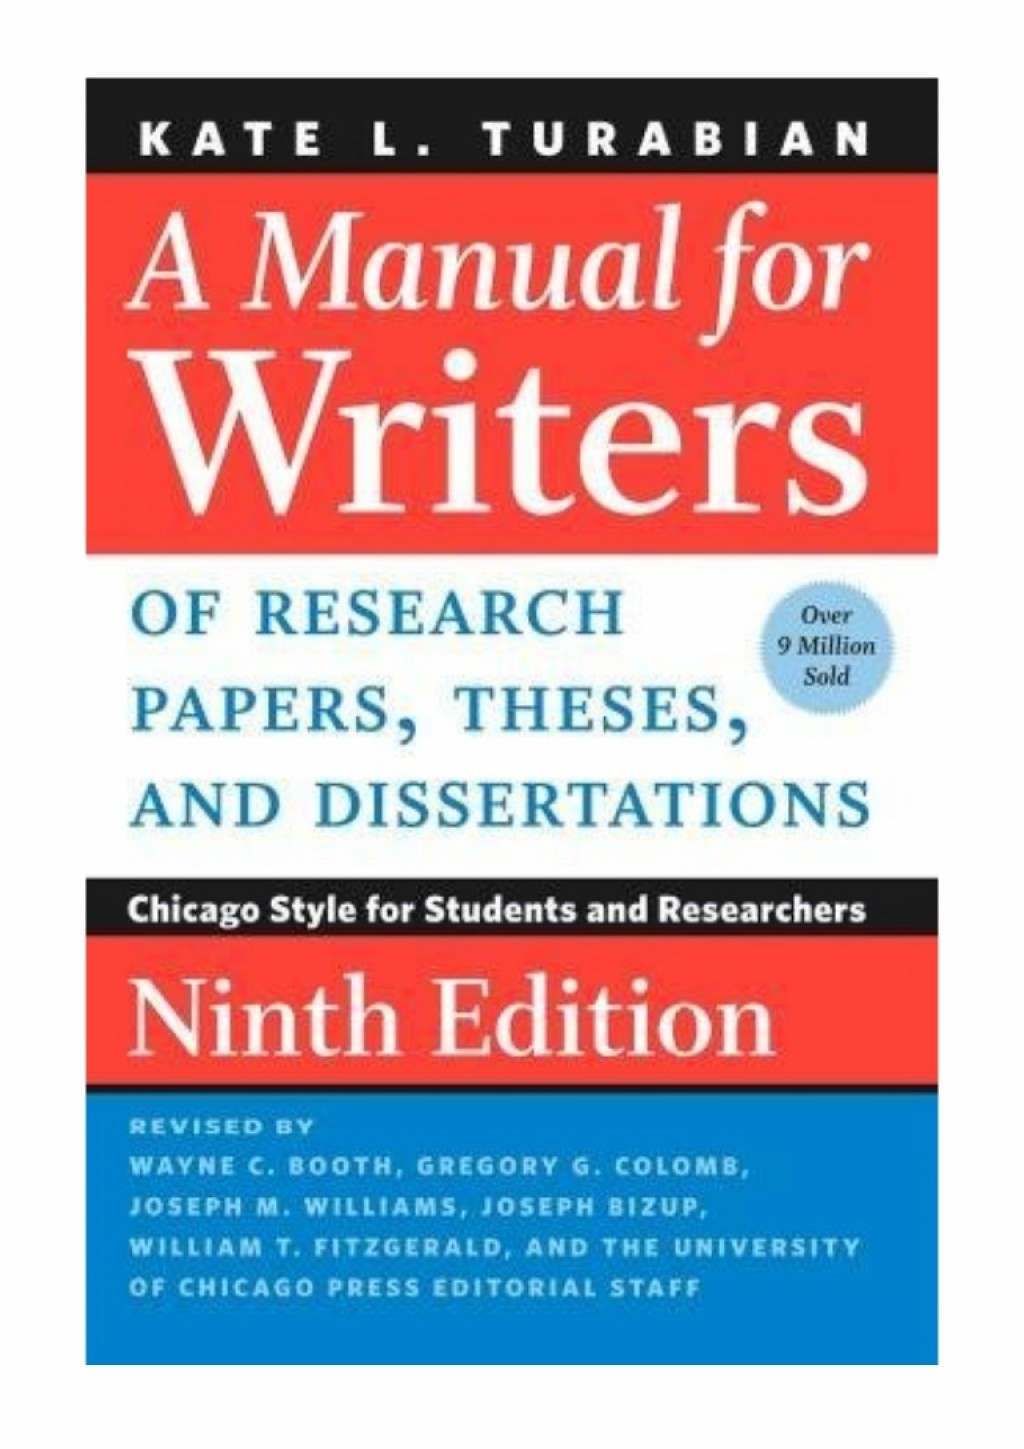 010 Manual For Writers Of Research Papers Theses And Dissertations Paper 022643057x Amanualforwritersofresearchpapersthesesanddissertationsnintheditionbykatel Thumbnail Magnificent A Amazon 9th Edition 8th 13 Large